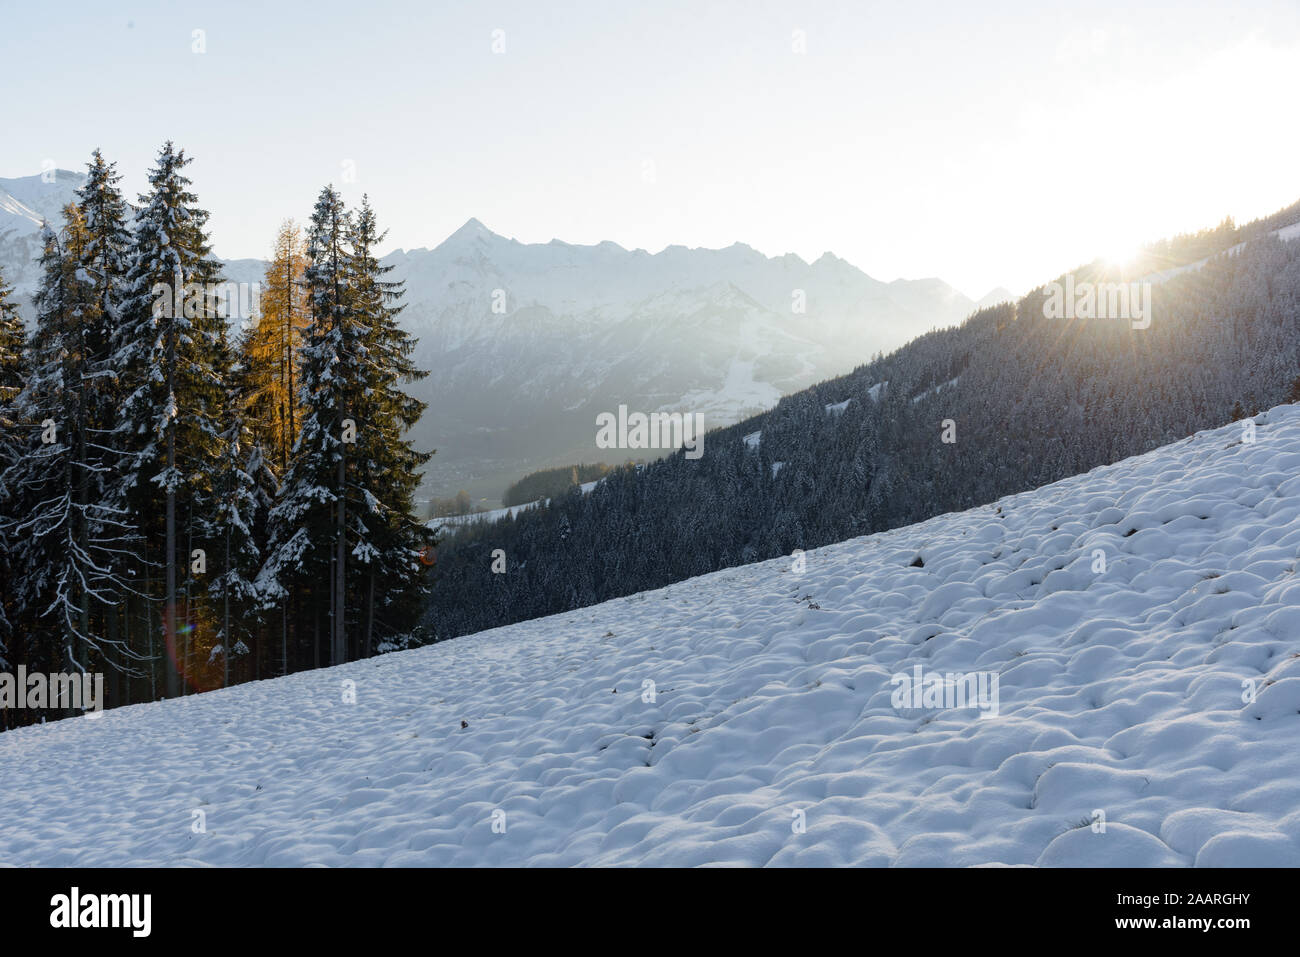 View of the mountain Kitzsteinhorn in winter with trees in the foreground. View from Keilberg, Schmittenhöhe, Zell am See, Salzburger Land, Austria. Stock Photo